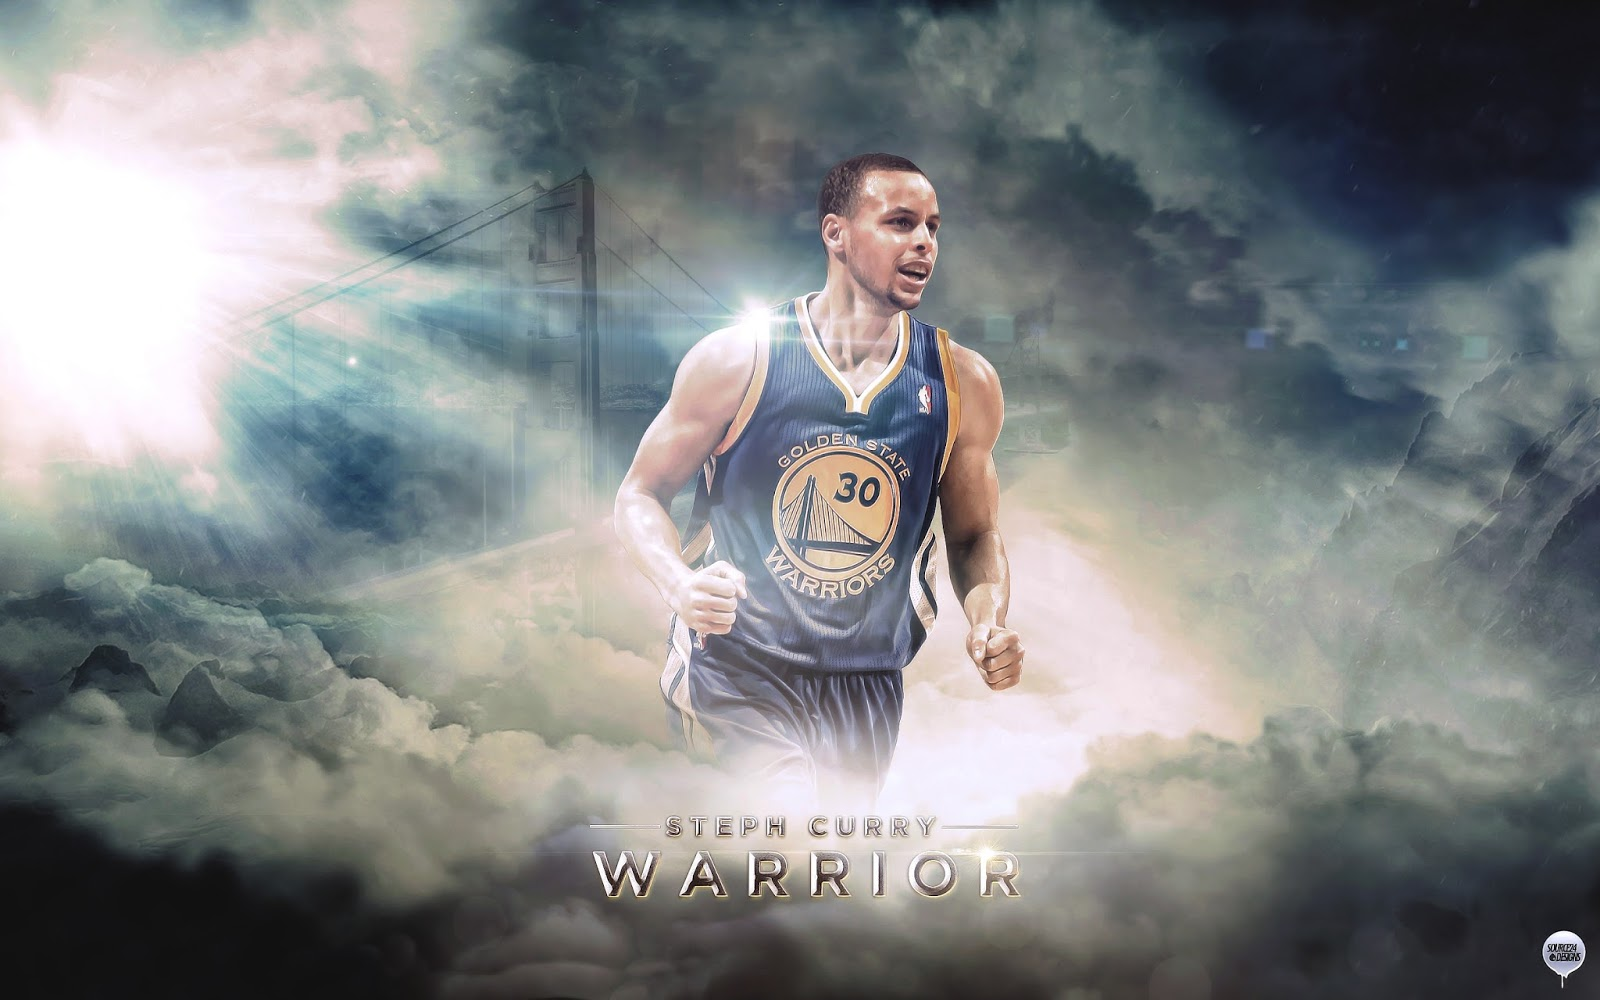 Stephen Curry Basketball Player Wide